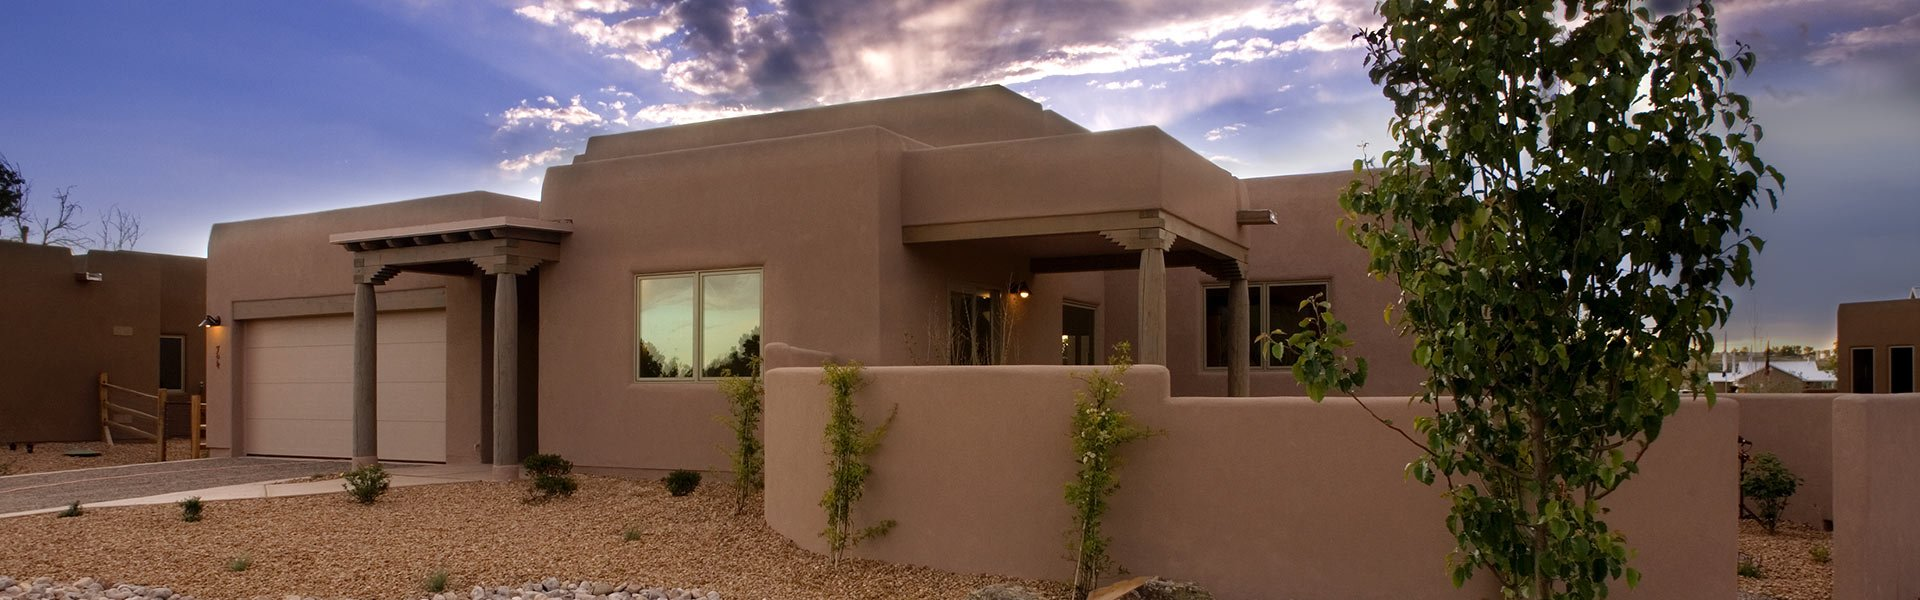 High quality new mexico custom home builders homes by for Build a house for 200k